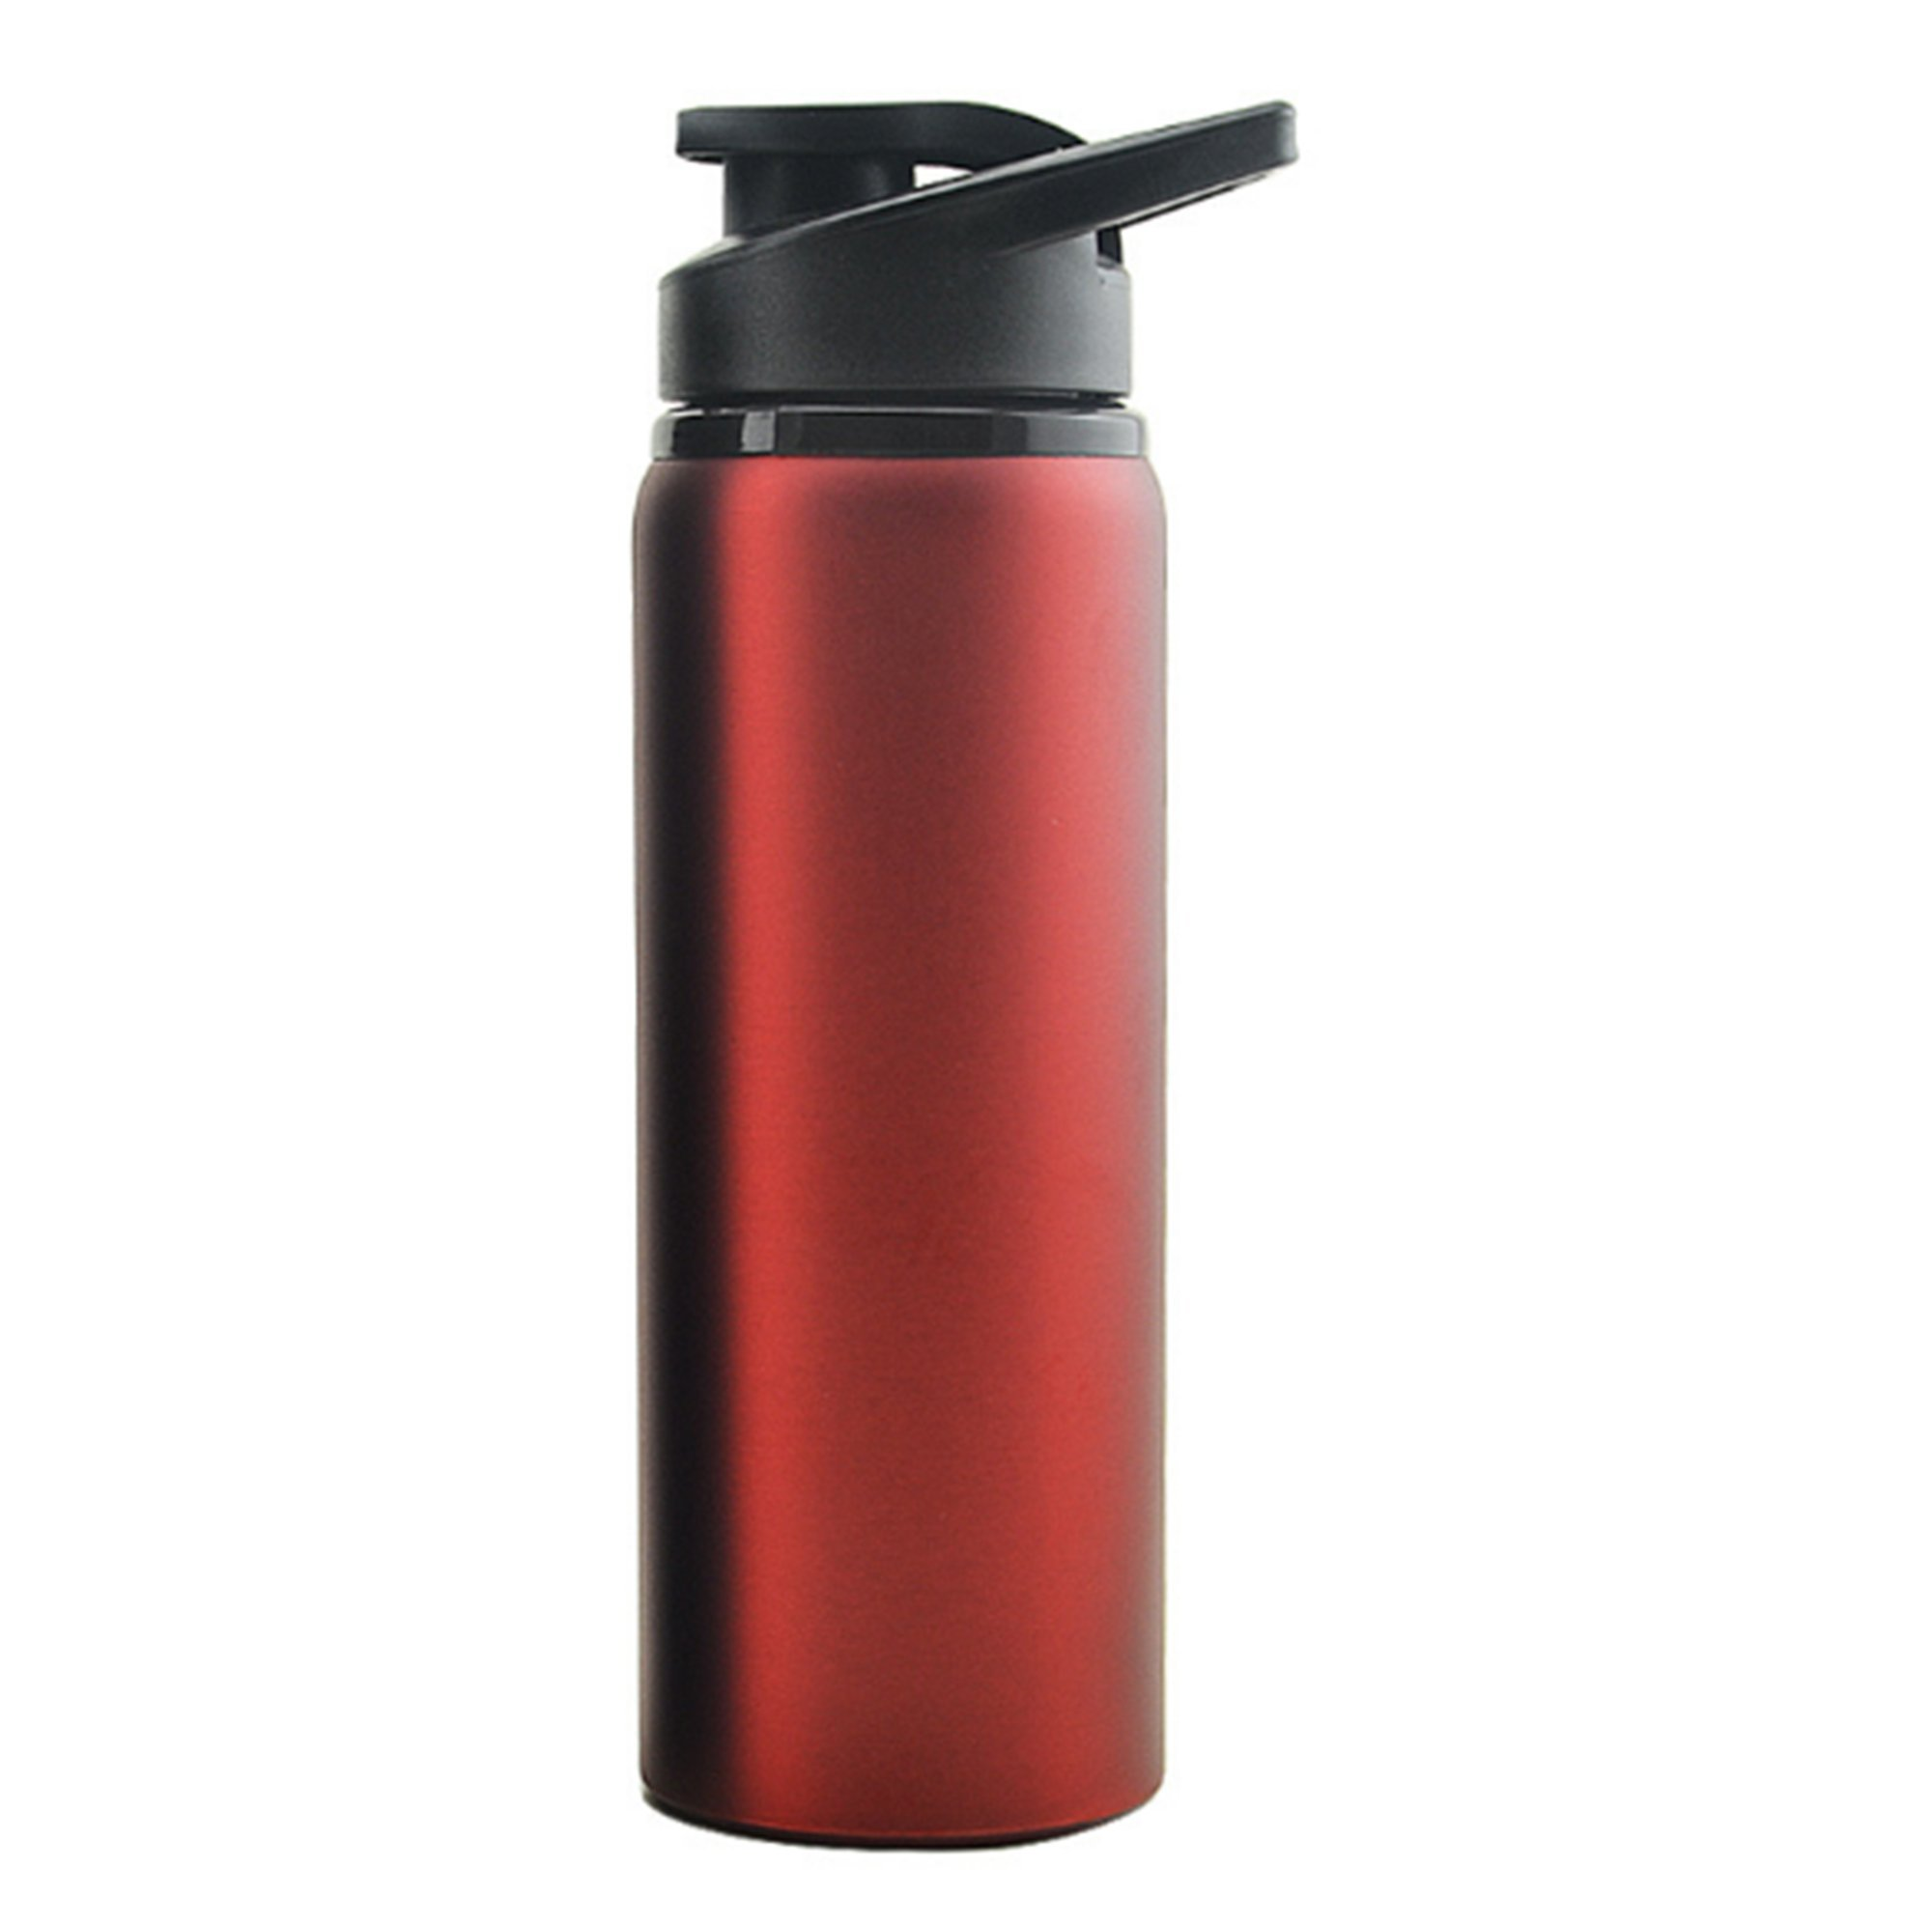 NOMSOCR Double Wall Vacuum Insulated Stainless Steel Coffee Travel Mug with Flip Open Lid, Resistant to stains and odors, Water Bottle for Women Men (Red, 24-Ounce)